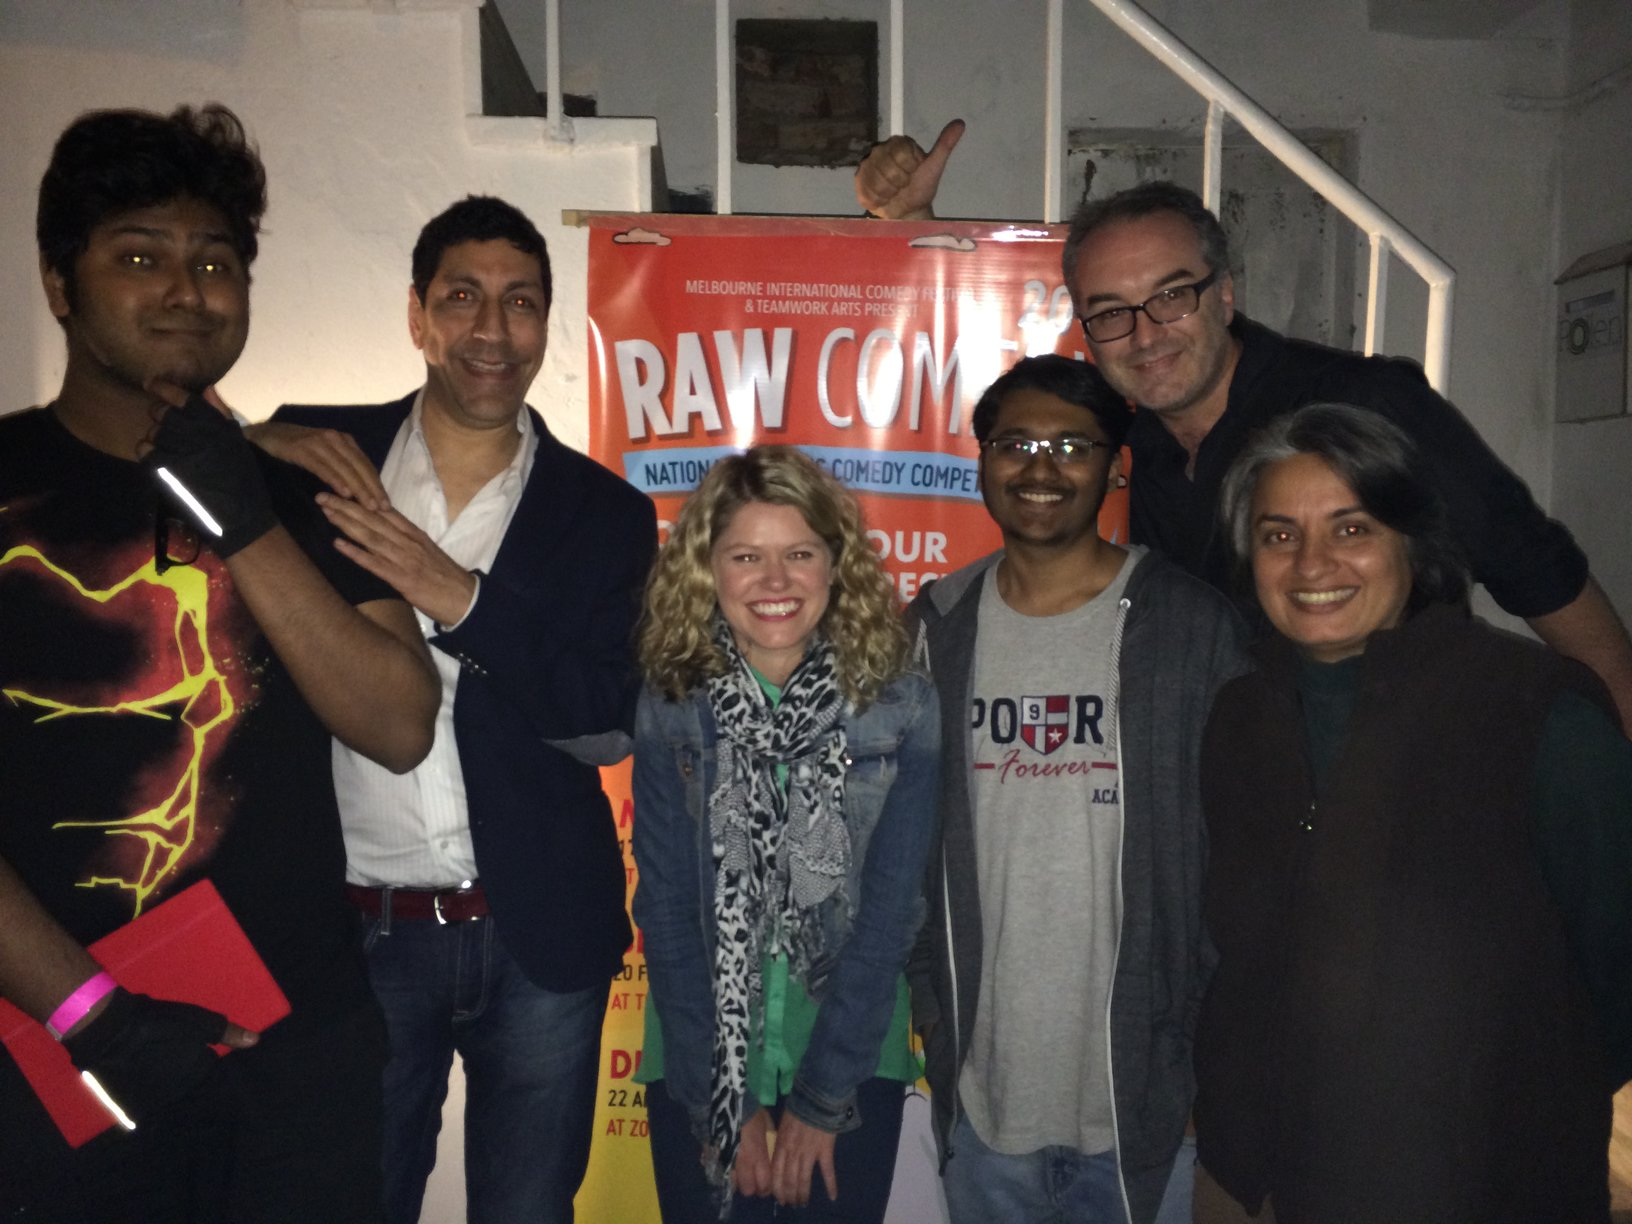 Here we are with the winners Utsav, Rajneesh, Kate, Rohan, this idiot and Vasu.